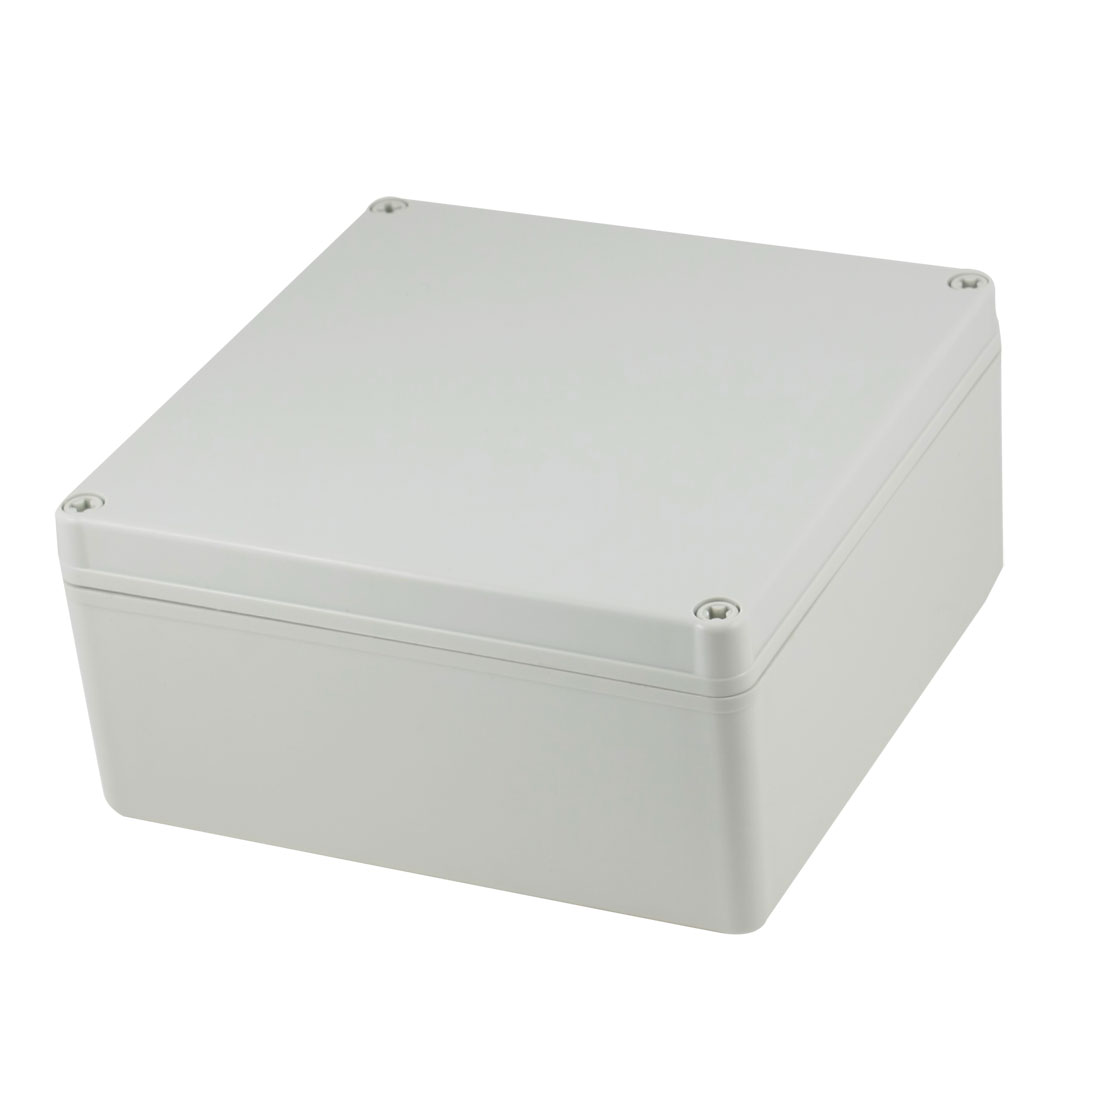 195mm x 195mm x 95mm Rectangle Plastic Sealed Electric Junction Enclose Box Power Protection Case